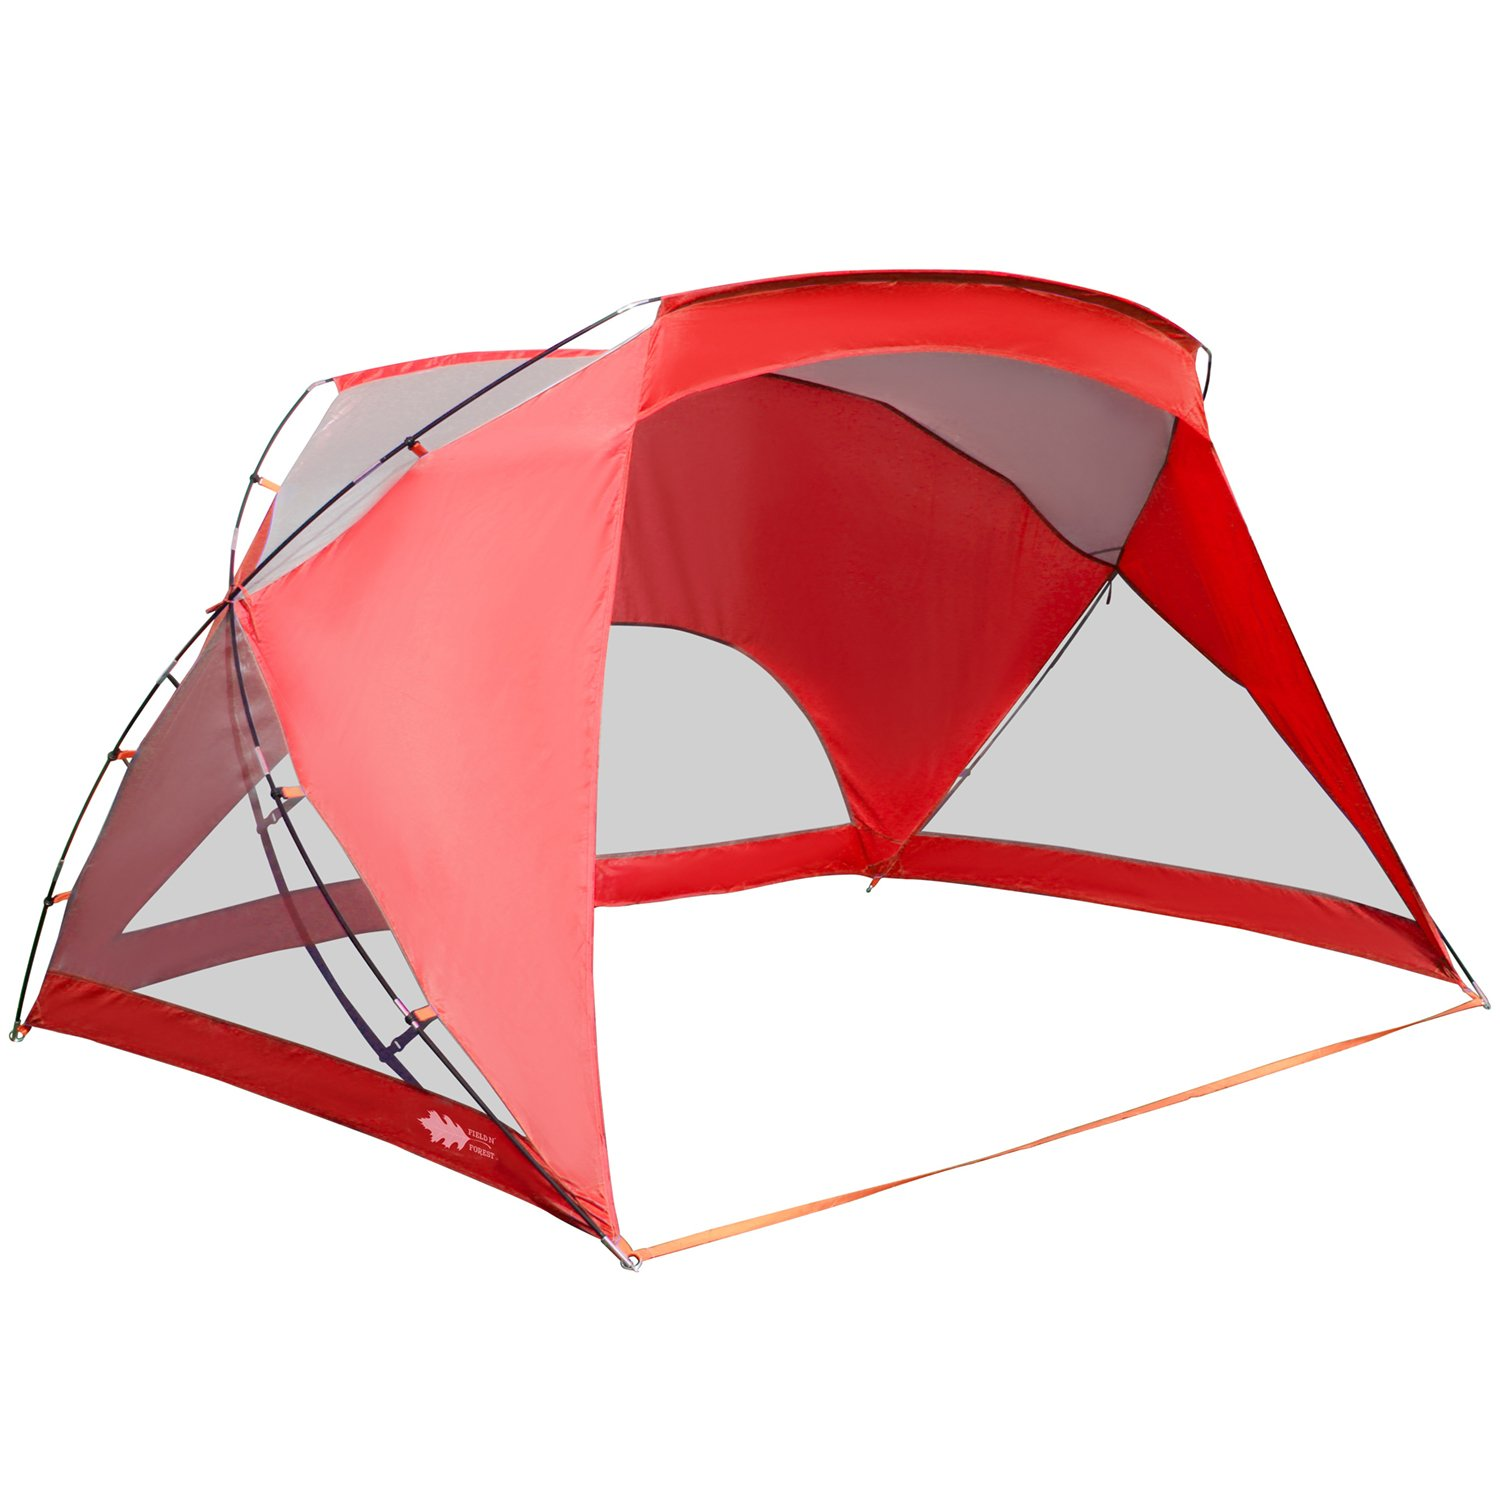 ALPHA CAMP 3 Person Sports/Beach Shelter Easy Up Sun Shade - 9' x 6' Red by ALPHA CAMP